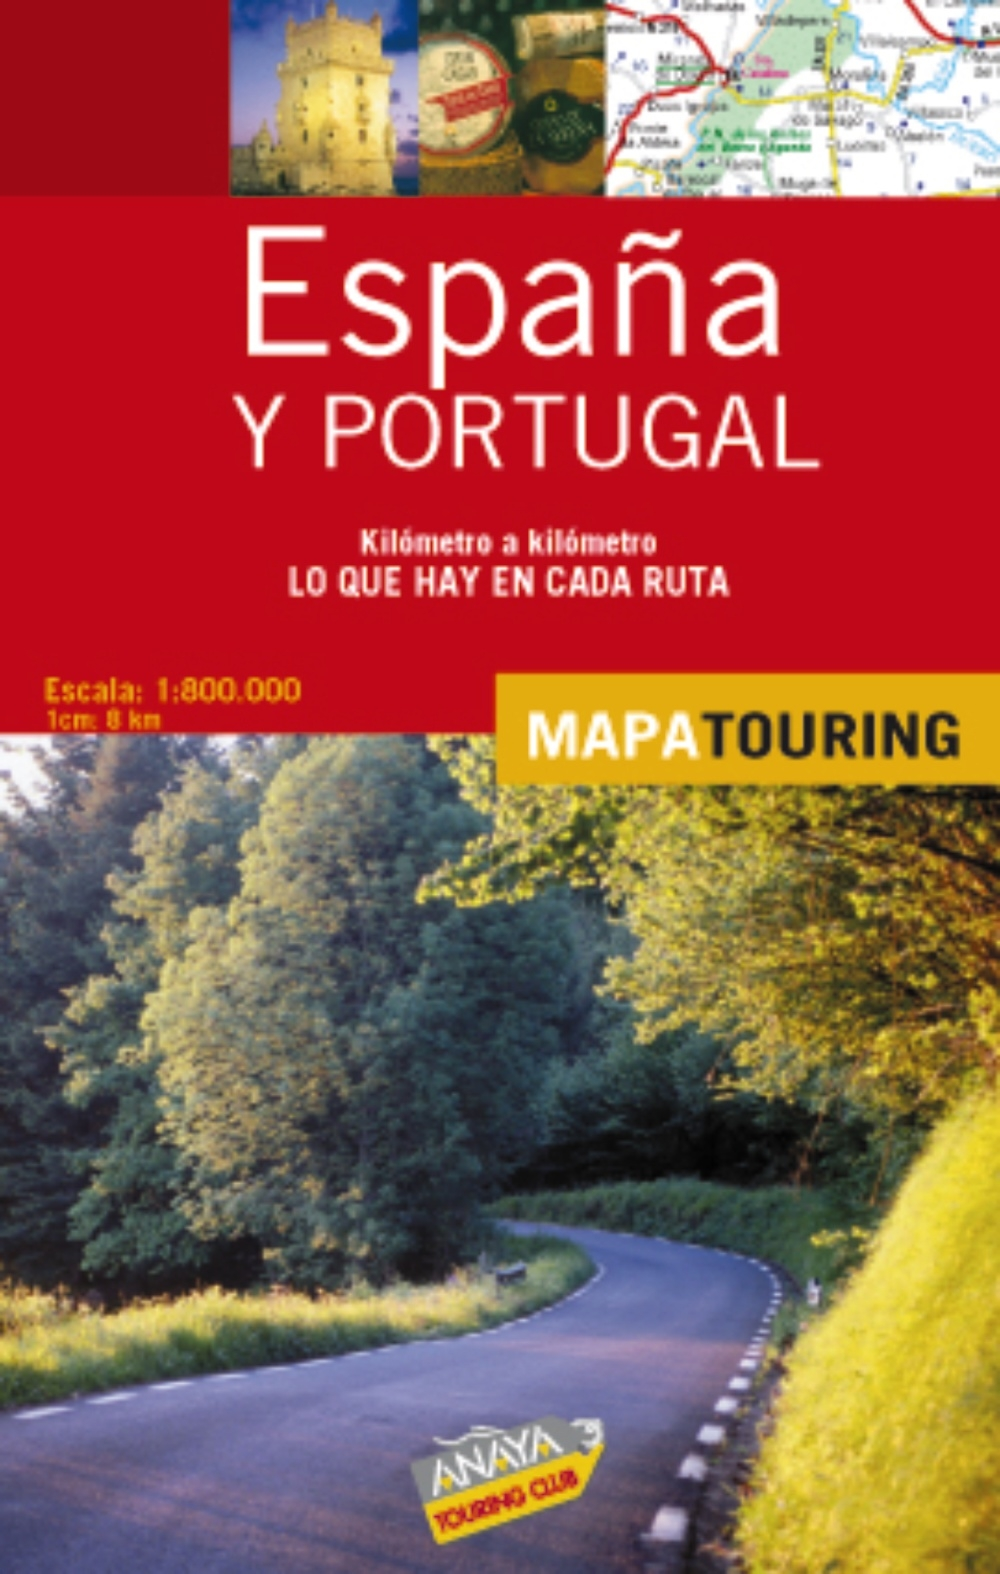 Mapa de carreteras de España y Portugal 1:800.000 - desplegable Mapa Touring: Amazon.es: Anaya Touring: Libros